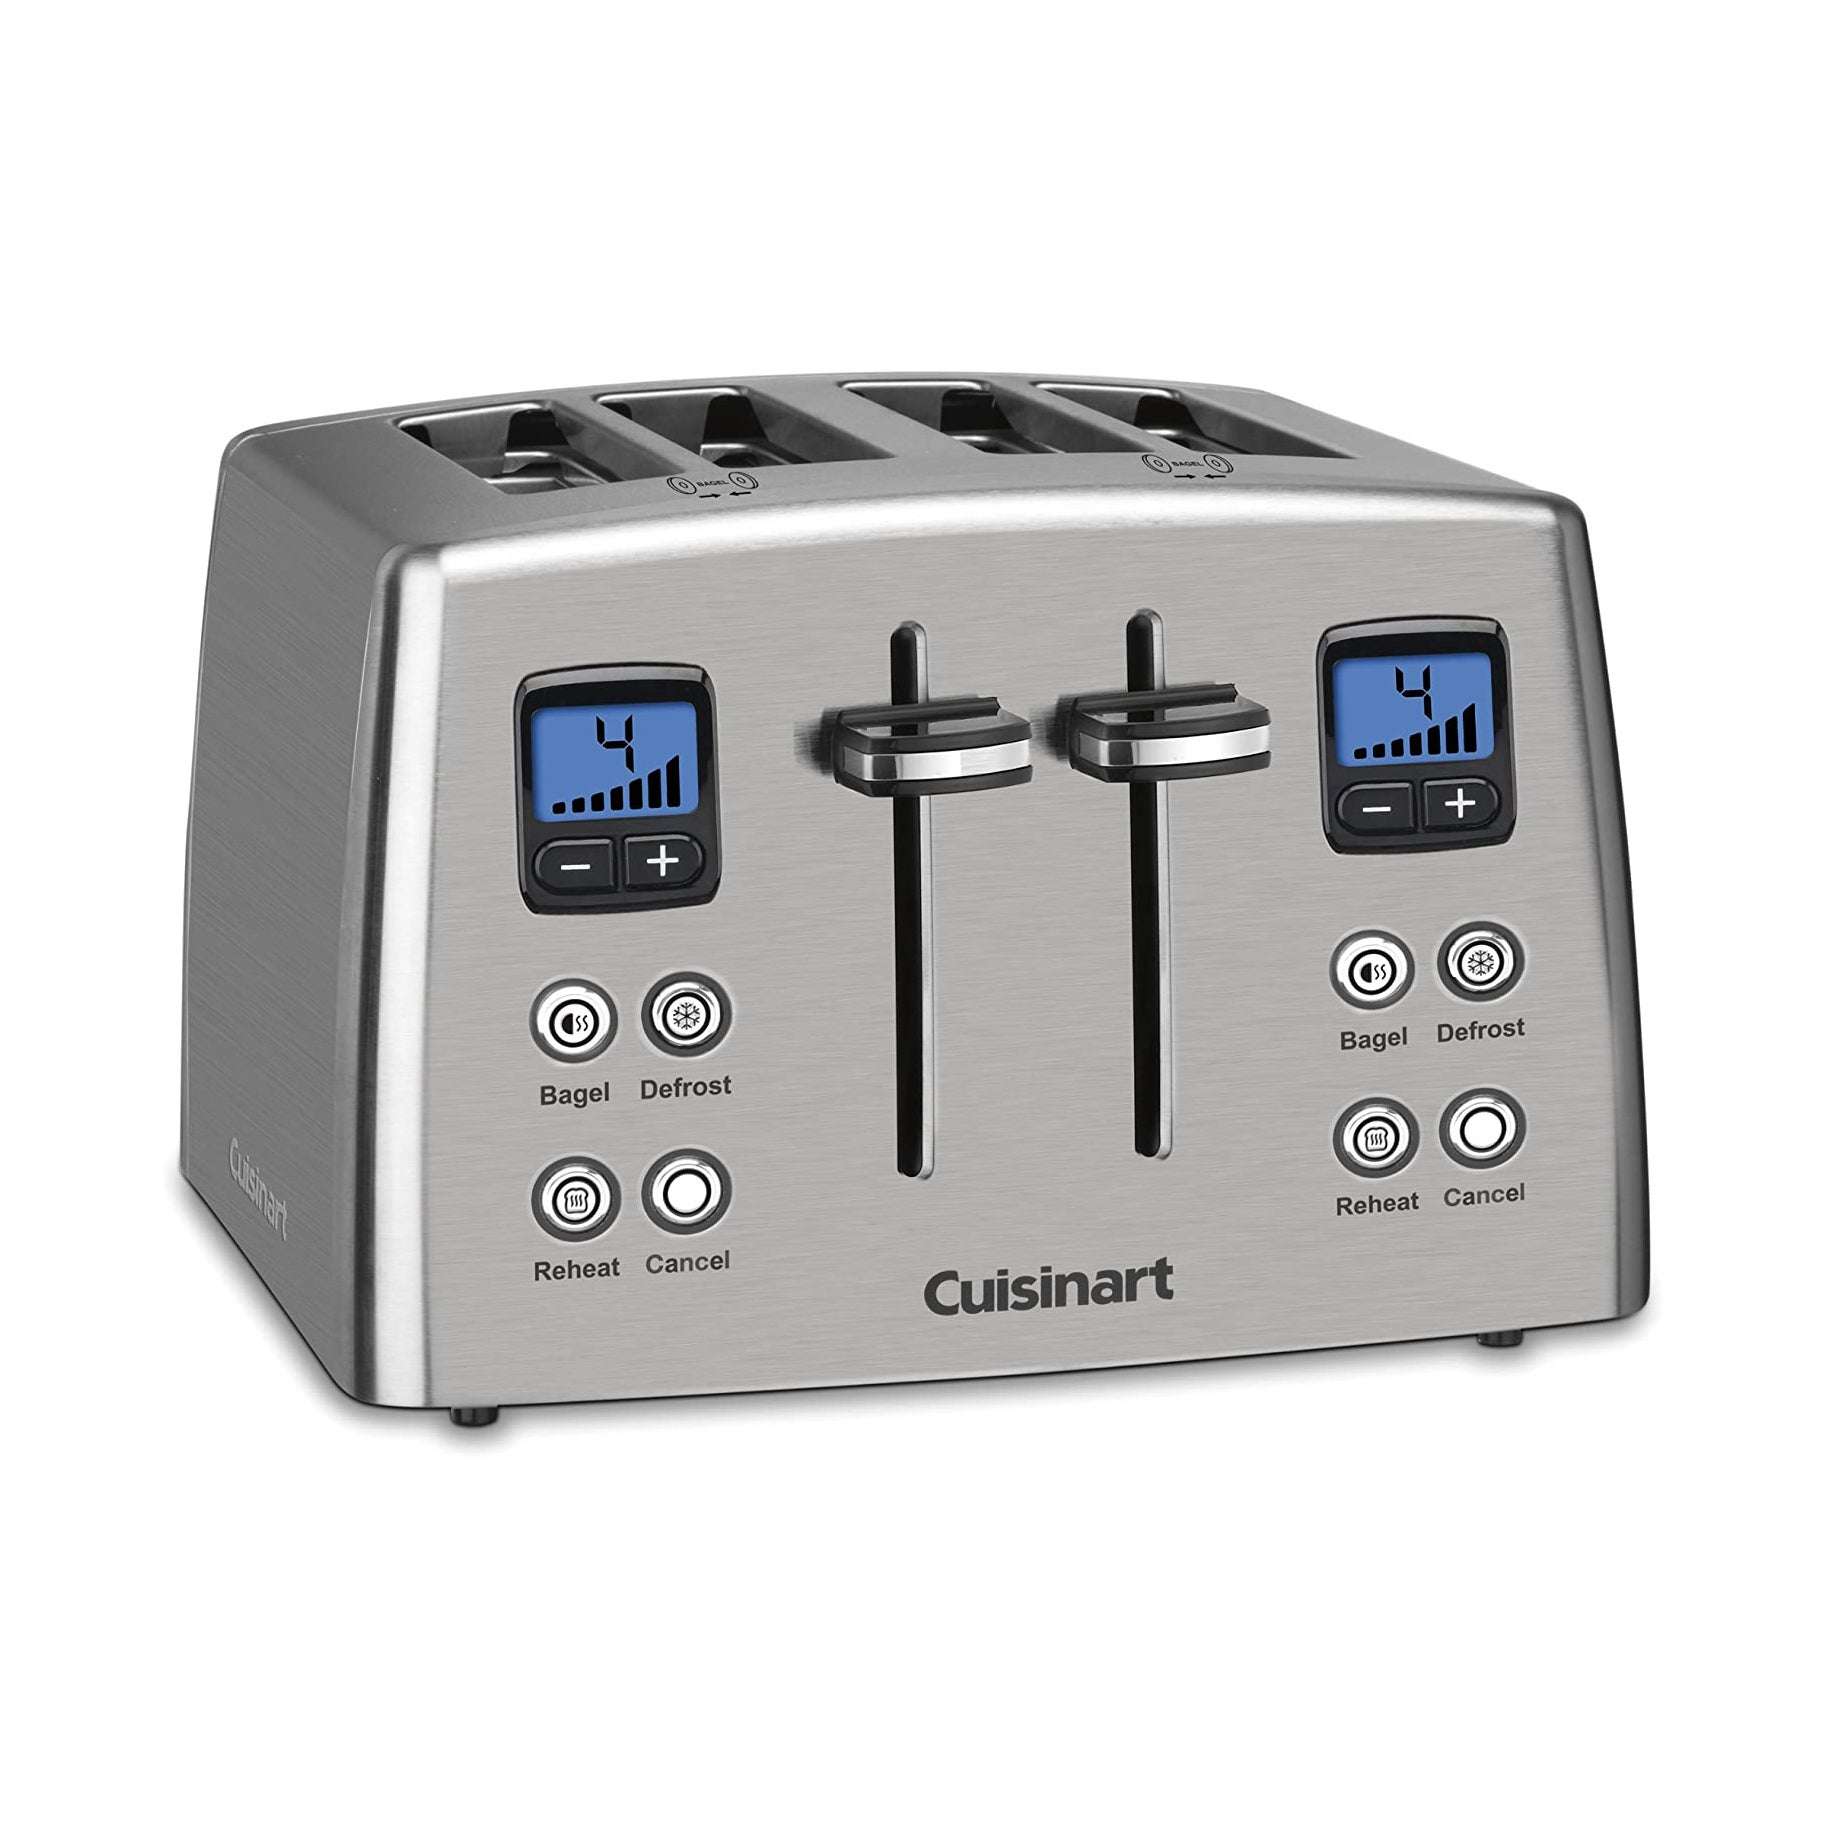 The Best Four Slice Toasters Option: Cuisinart Countdown Four Slice Toaster